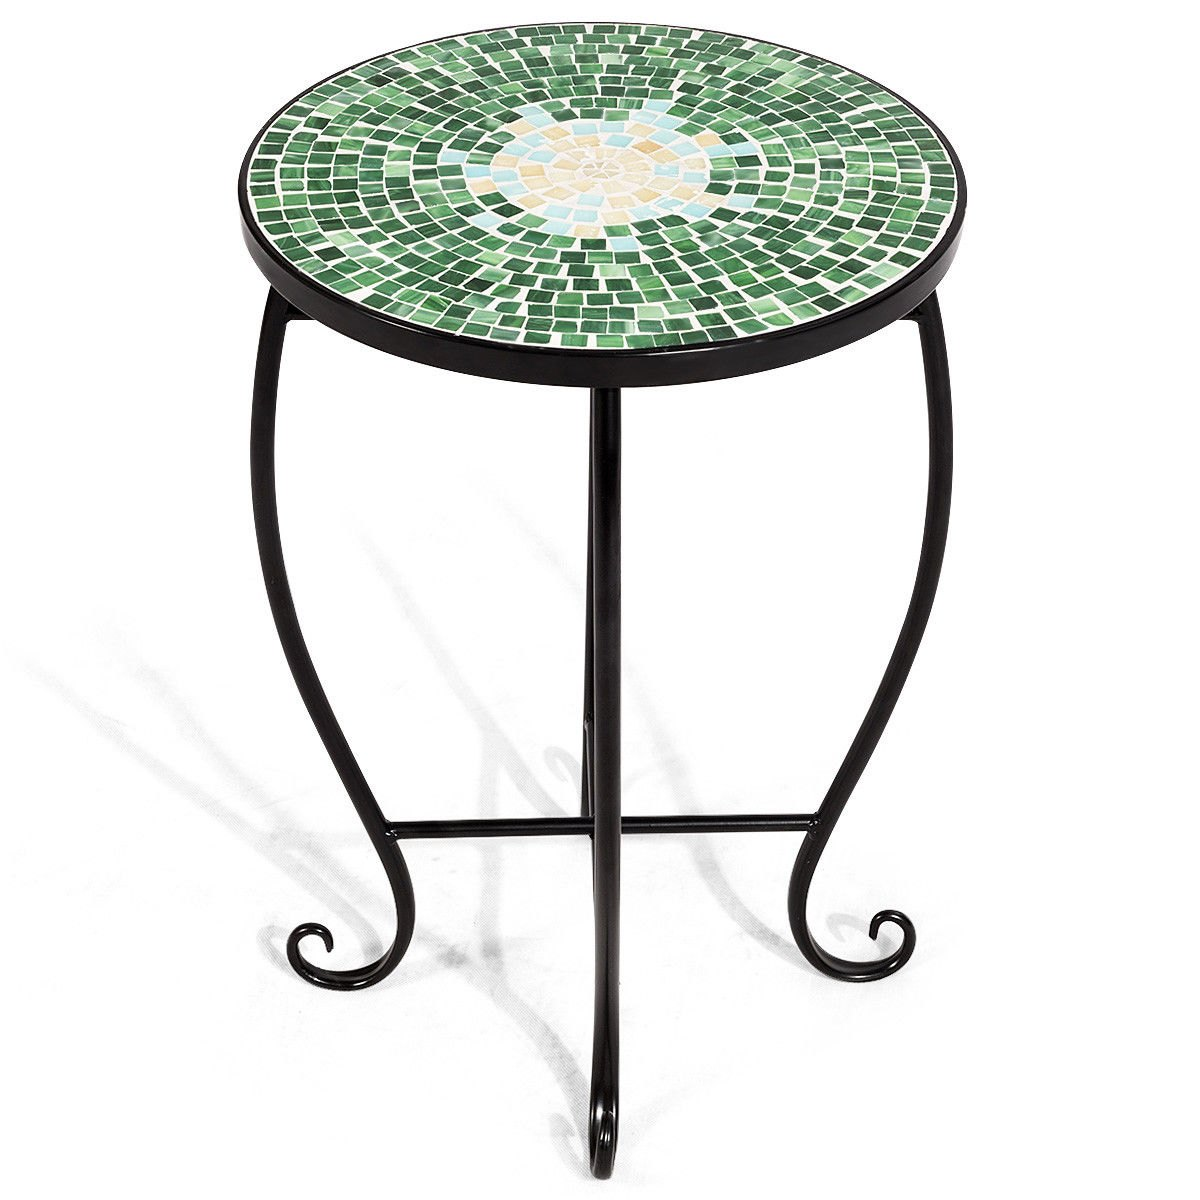 way outdoor indoor accent table plant stand scheme garden steel green metal coffee set microwave target white desk feature floor lamp foyer with storage black bedroom end tables